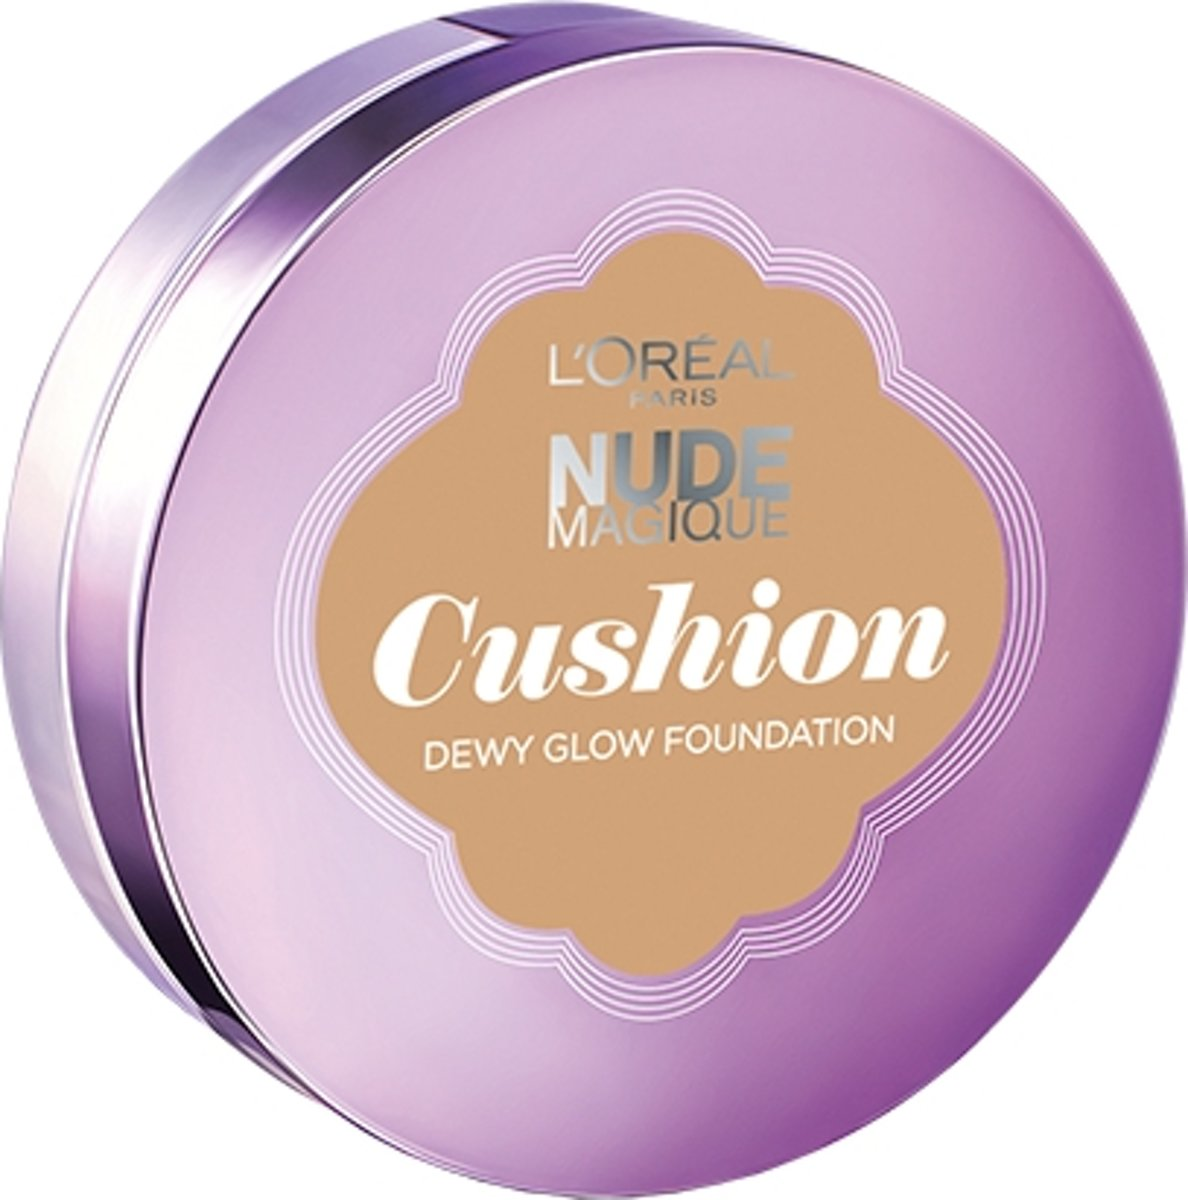 L'Oréal Paris Nude Magique Cushion - 06 Rose Beige - Foundation